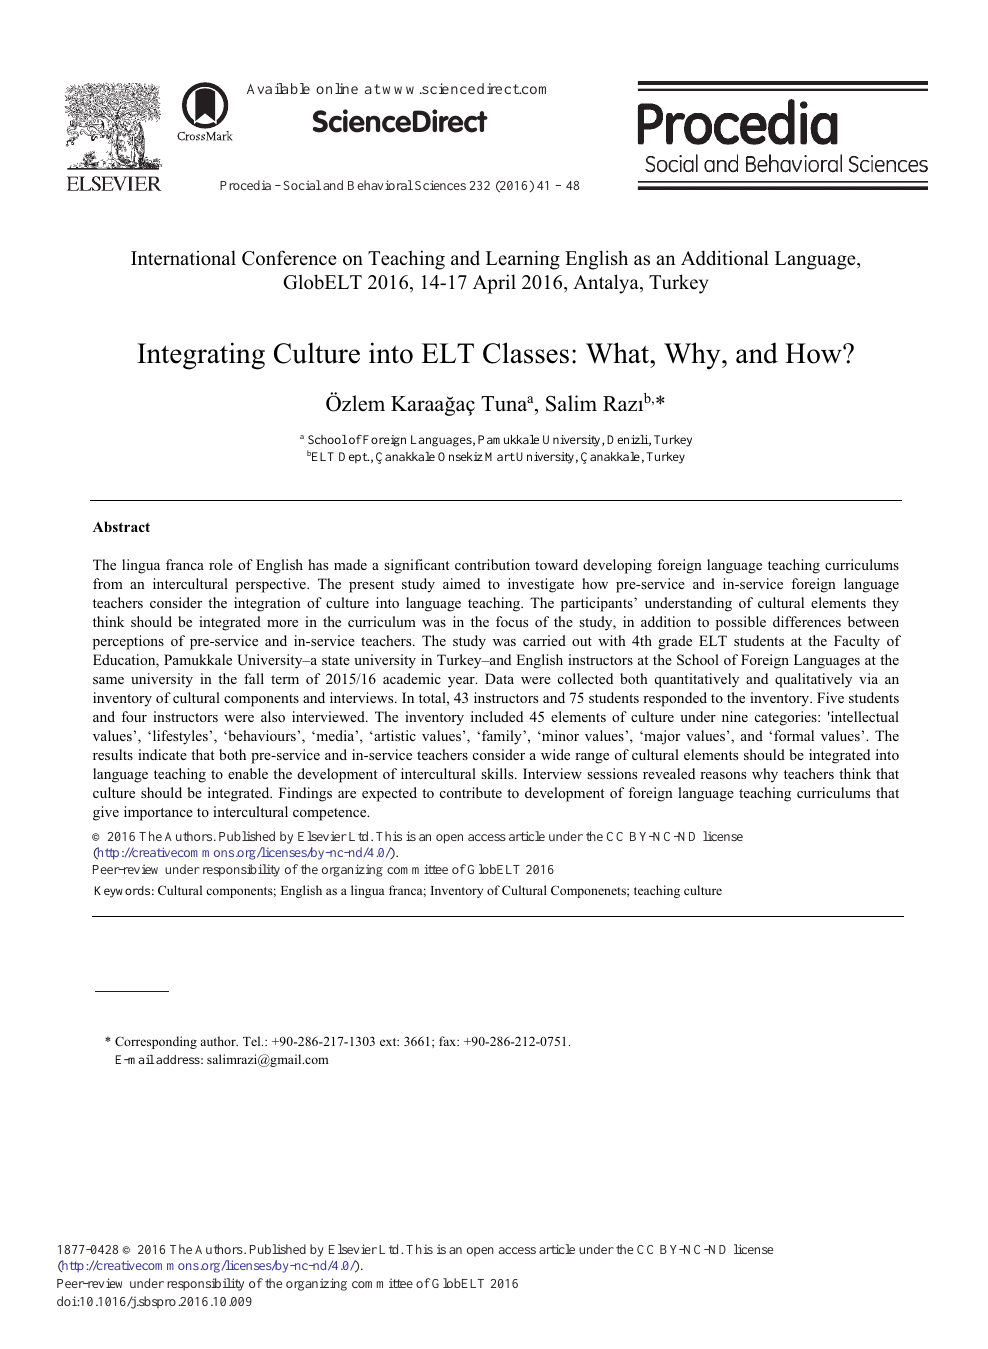 Integrating Culture into ELT Classes: What, Why, and How? – topic of